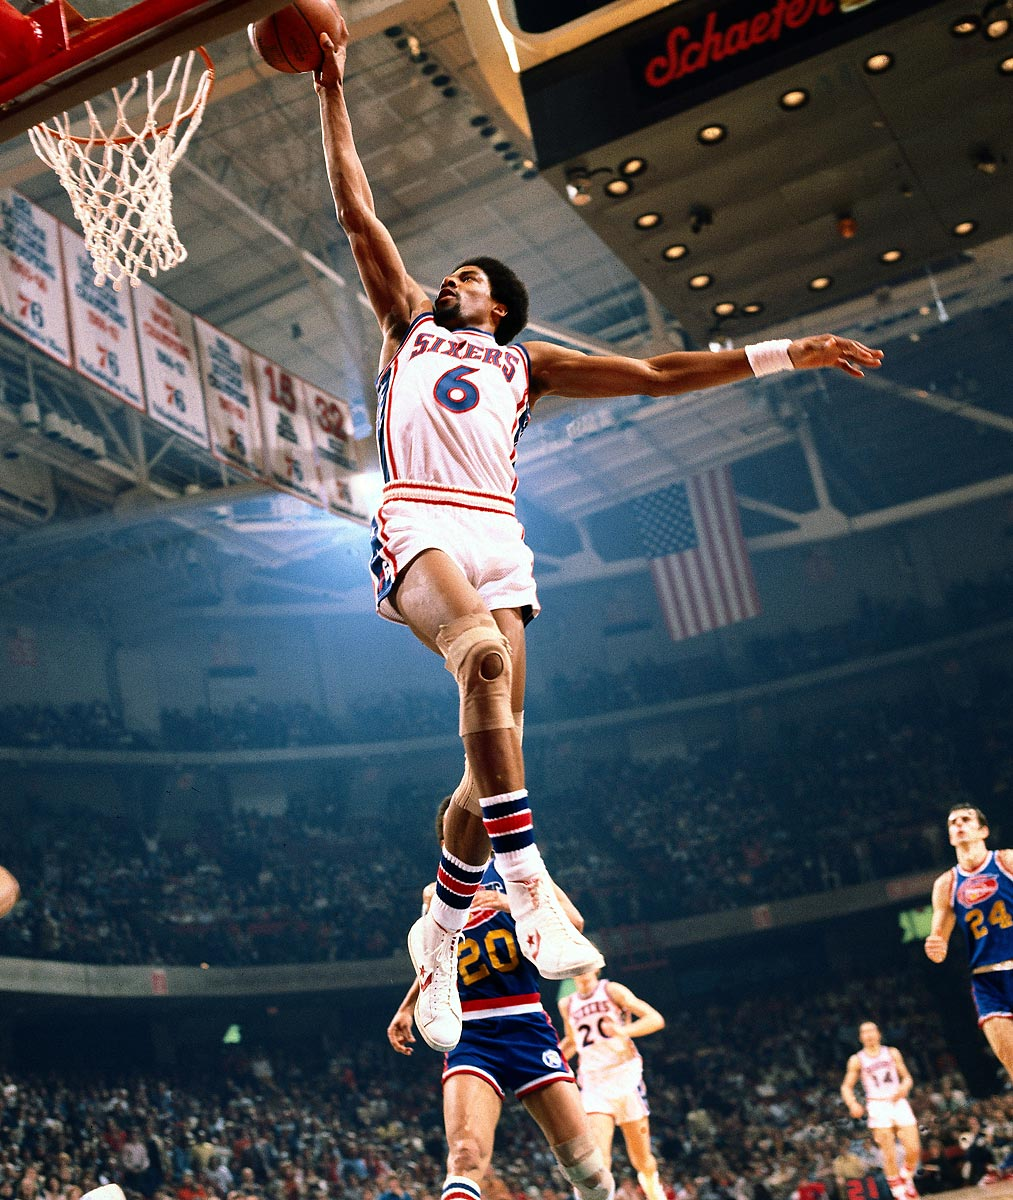 January 1977 | Philadelphia 76ers forward Julius Erving gets full extension on a one-handed dunk against the Denver Nuggets.